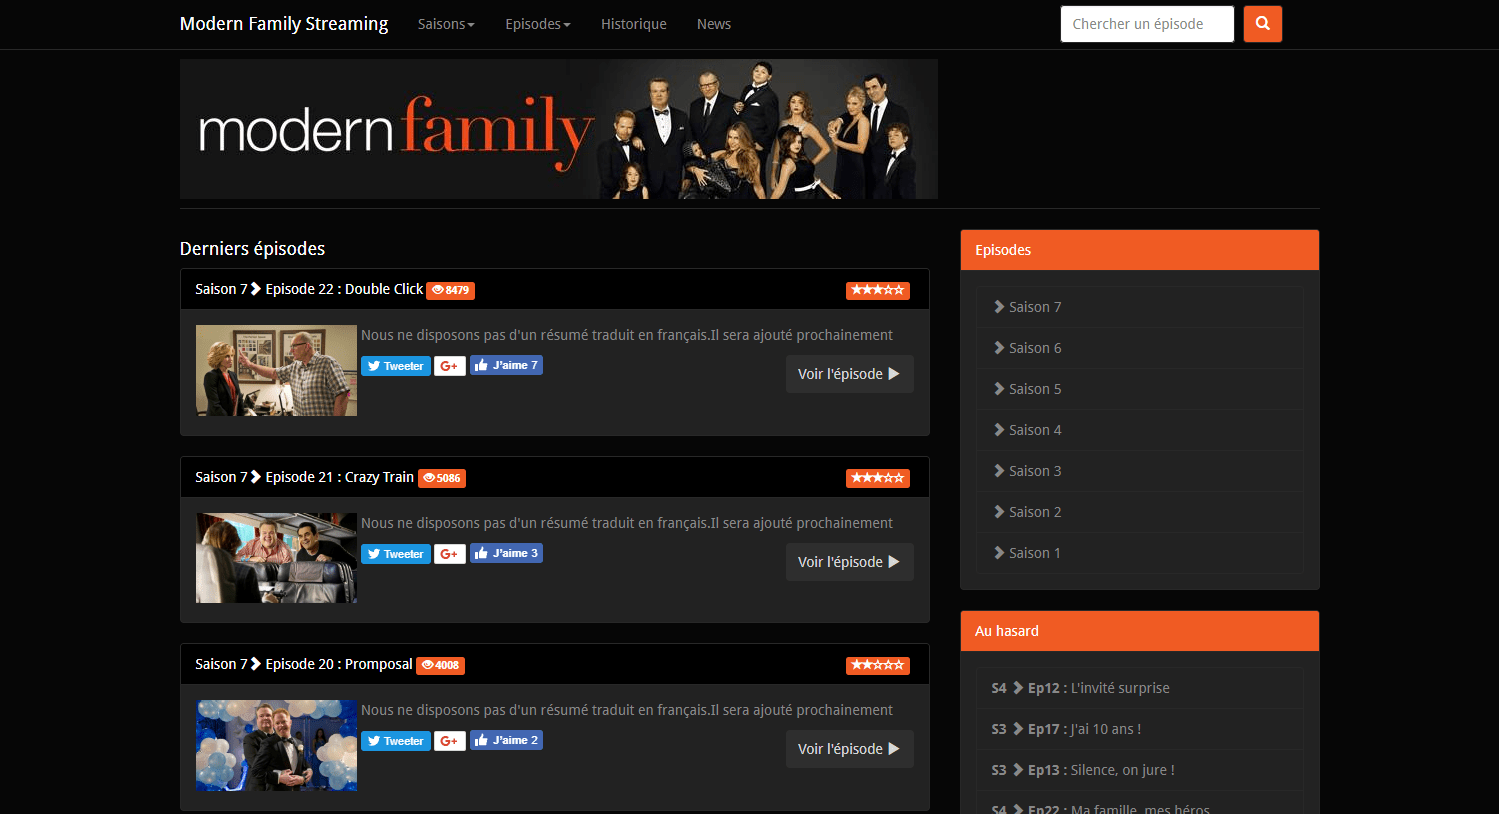 http://modern-family-streaming.com/